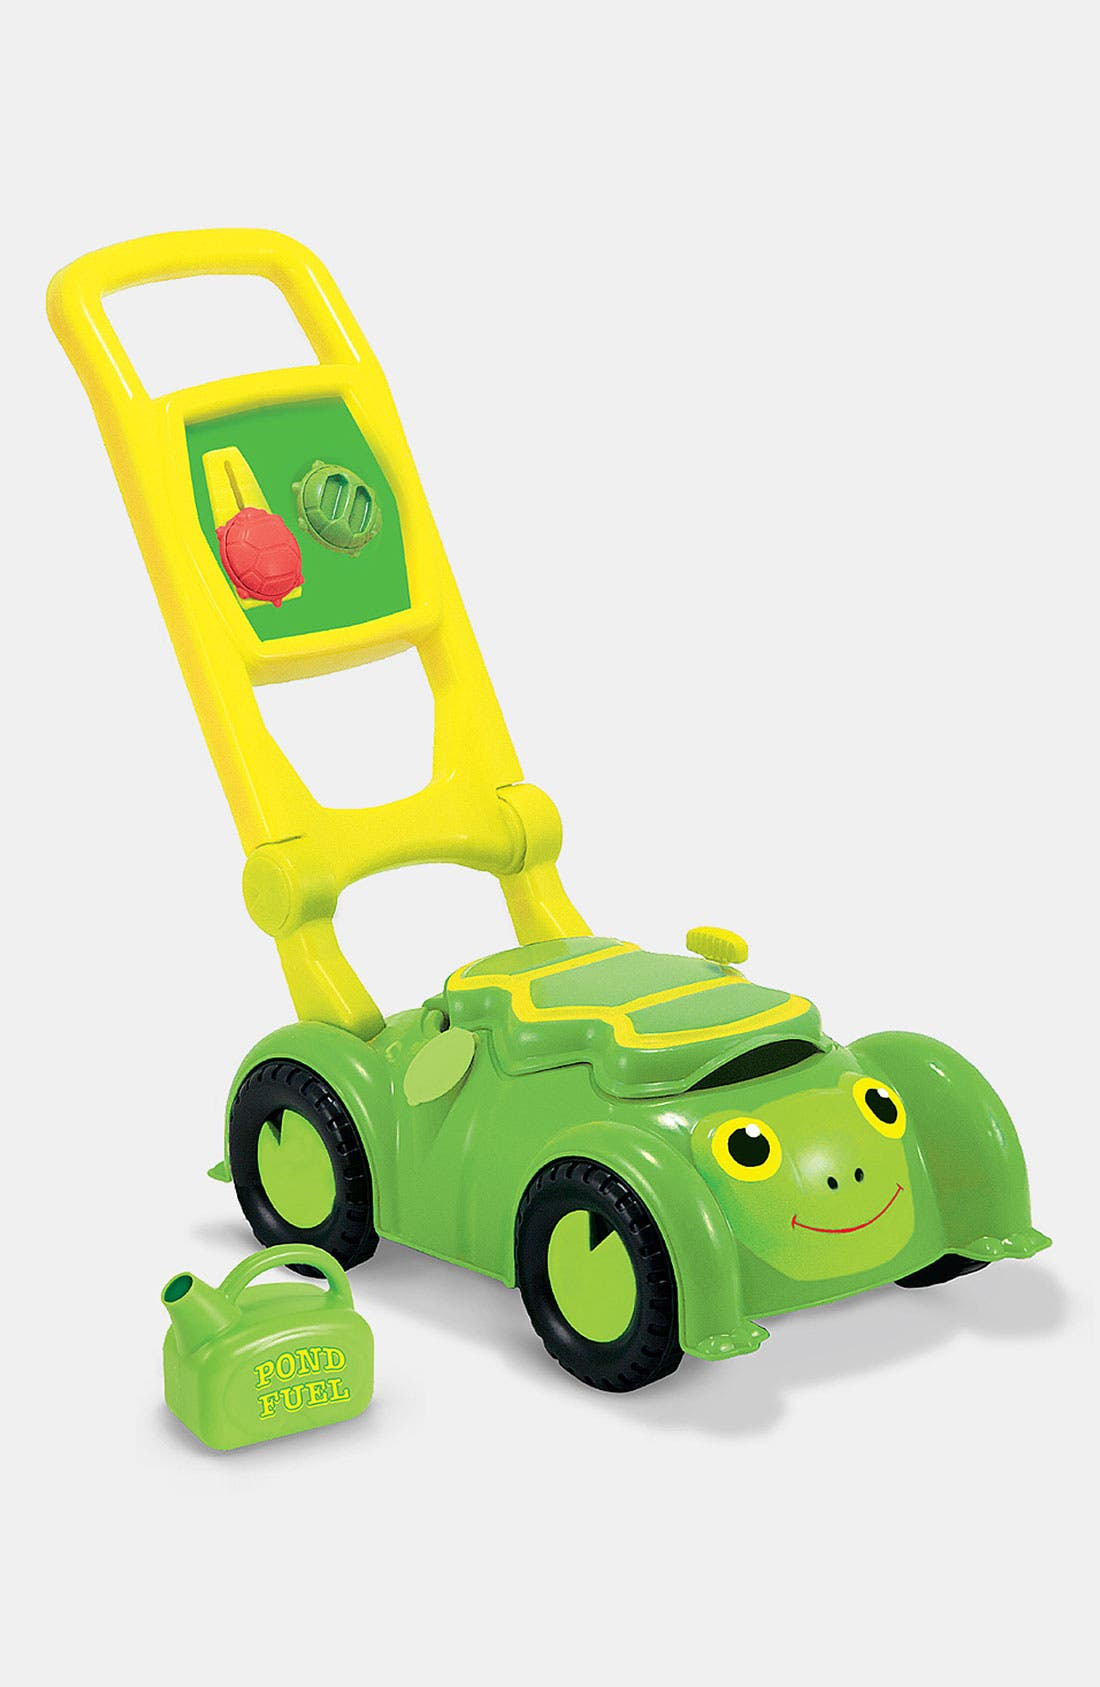 'Tootle Turtle' Lawn Mower Toy,                         Main,                         color, 960